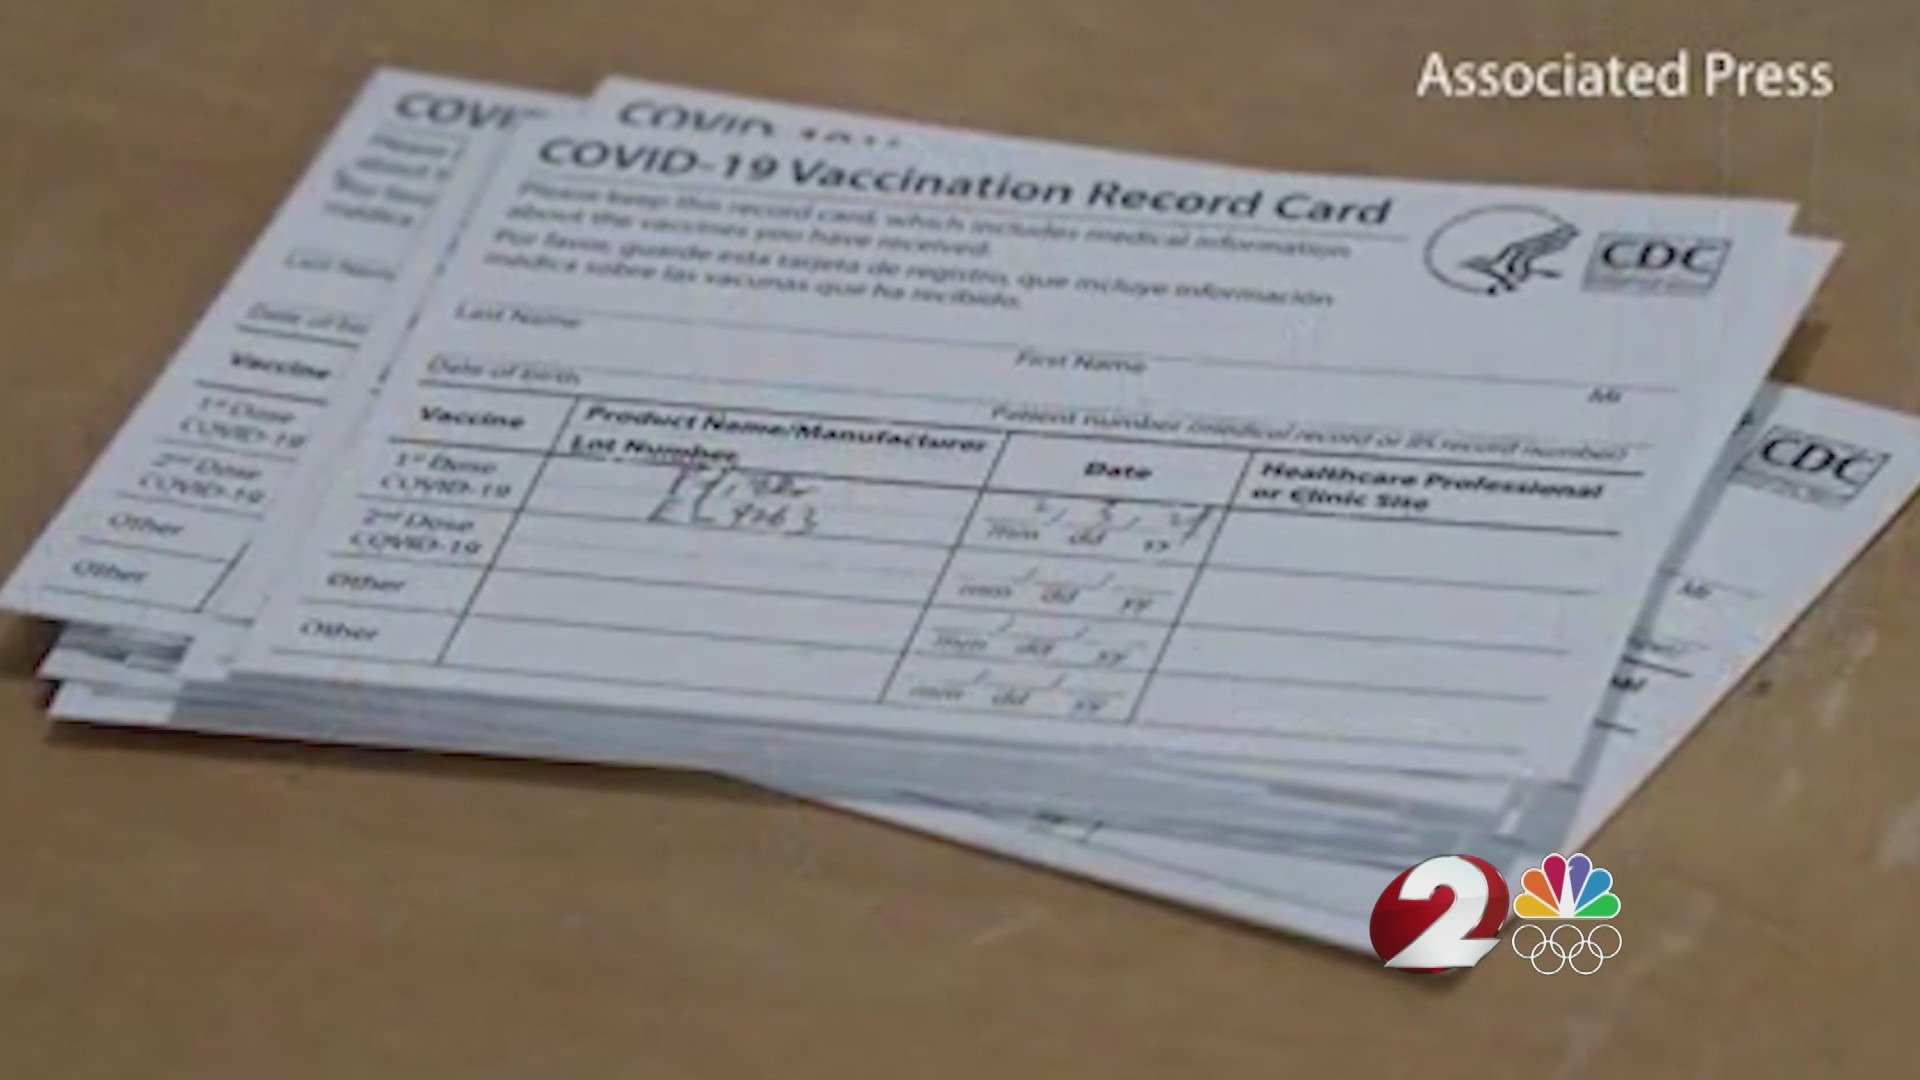 Vaccine cards offer proof of the COVID-19 vaccination